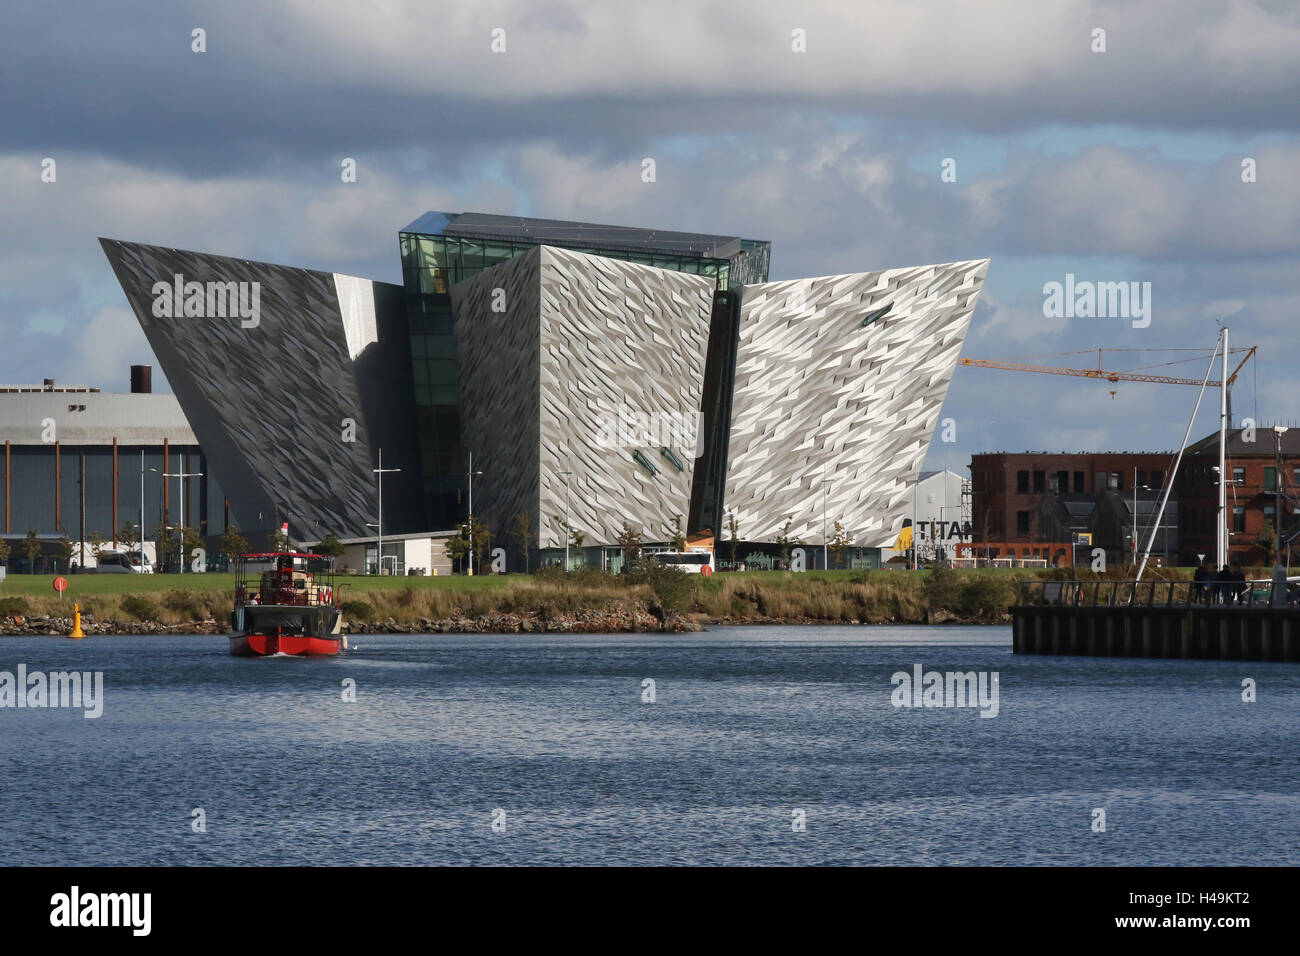 "The Titanic Building  in Belfast's Titanic Quarter.In the foreground is the ""Mona"", a boat used for Titanic Boat Stock Photo"